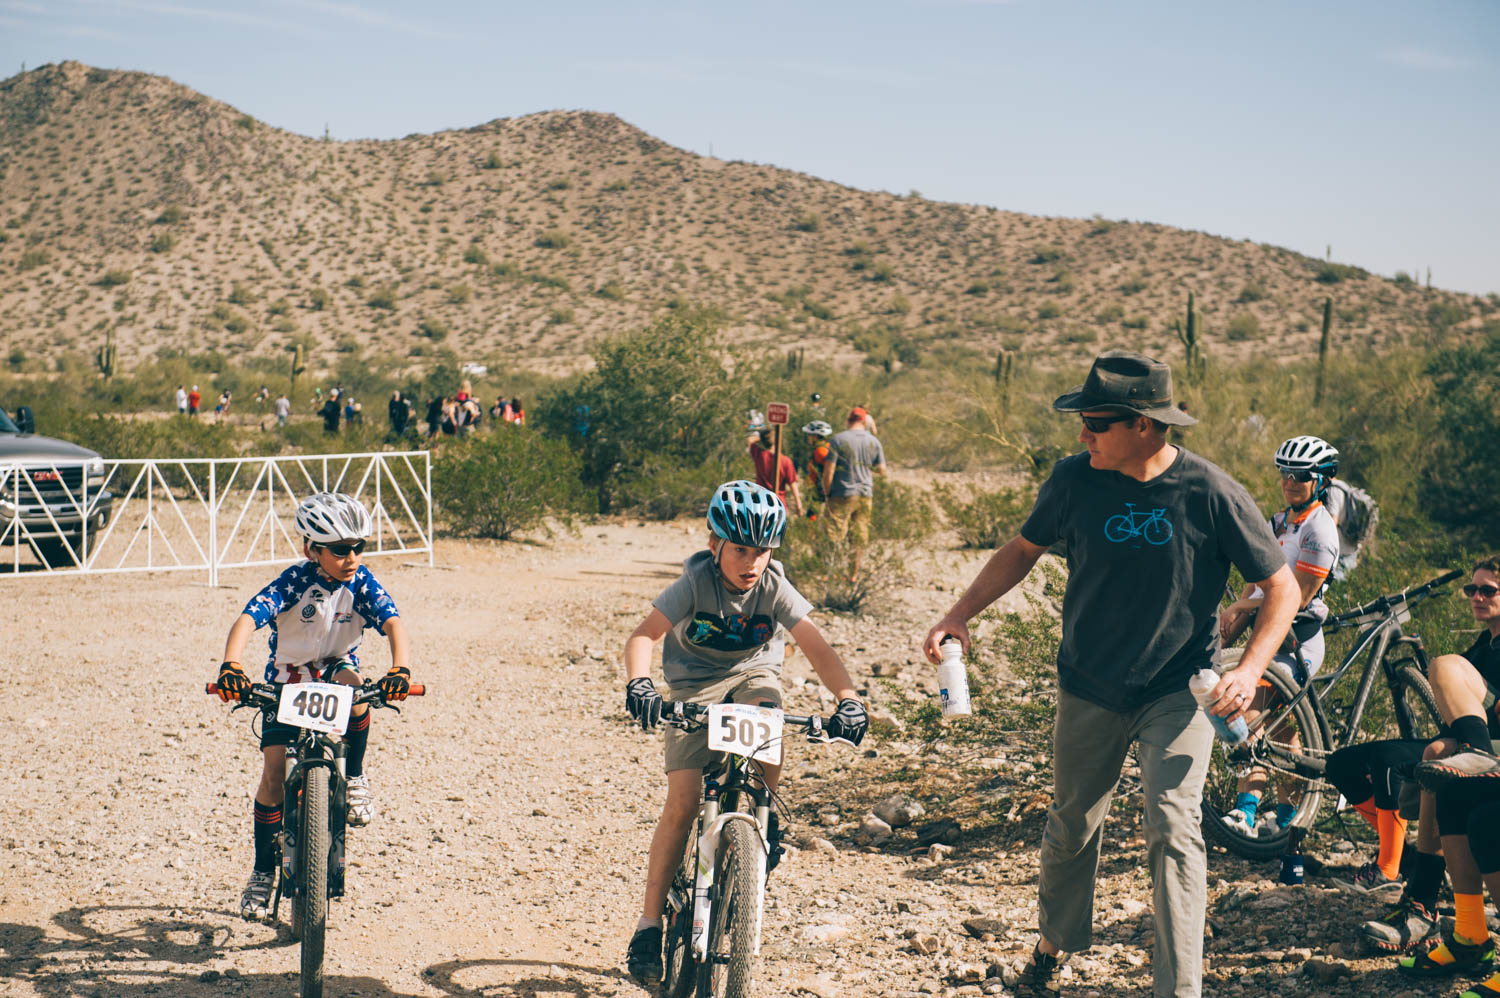 Diedra and Jason's sons were also racing. Jason was their support for the race. Here he is offering water to Charlie.